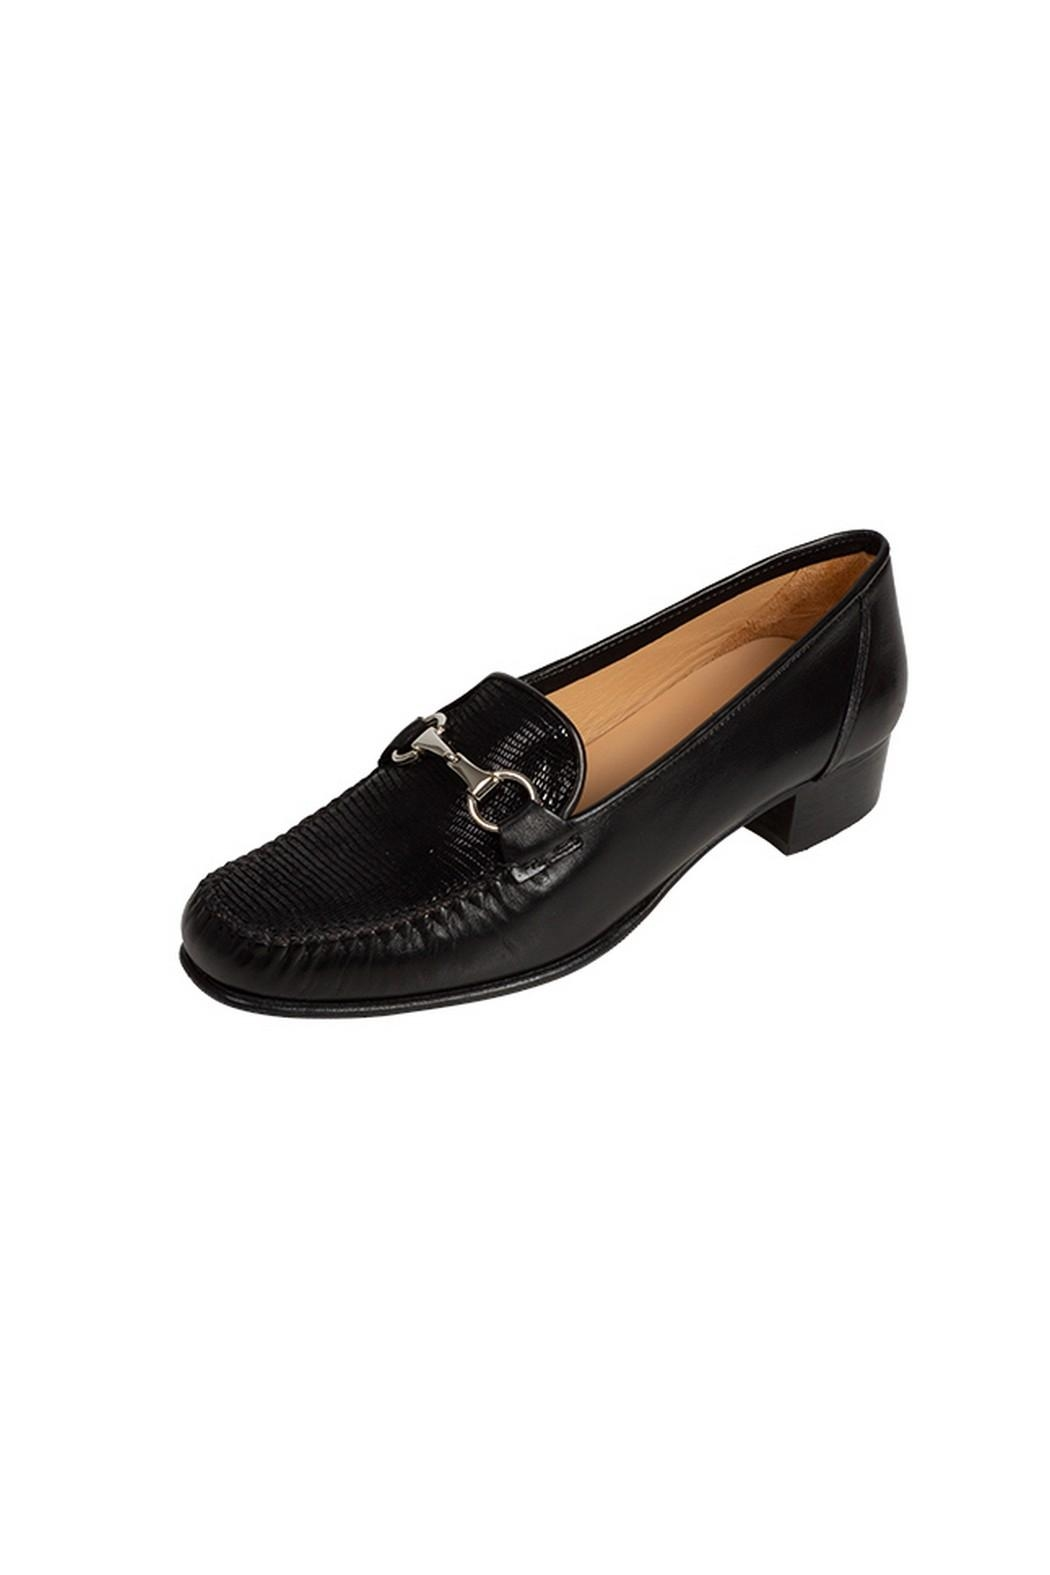 Pascucci Black Leather Loafer - Front Full Image